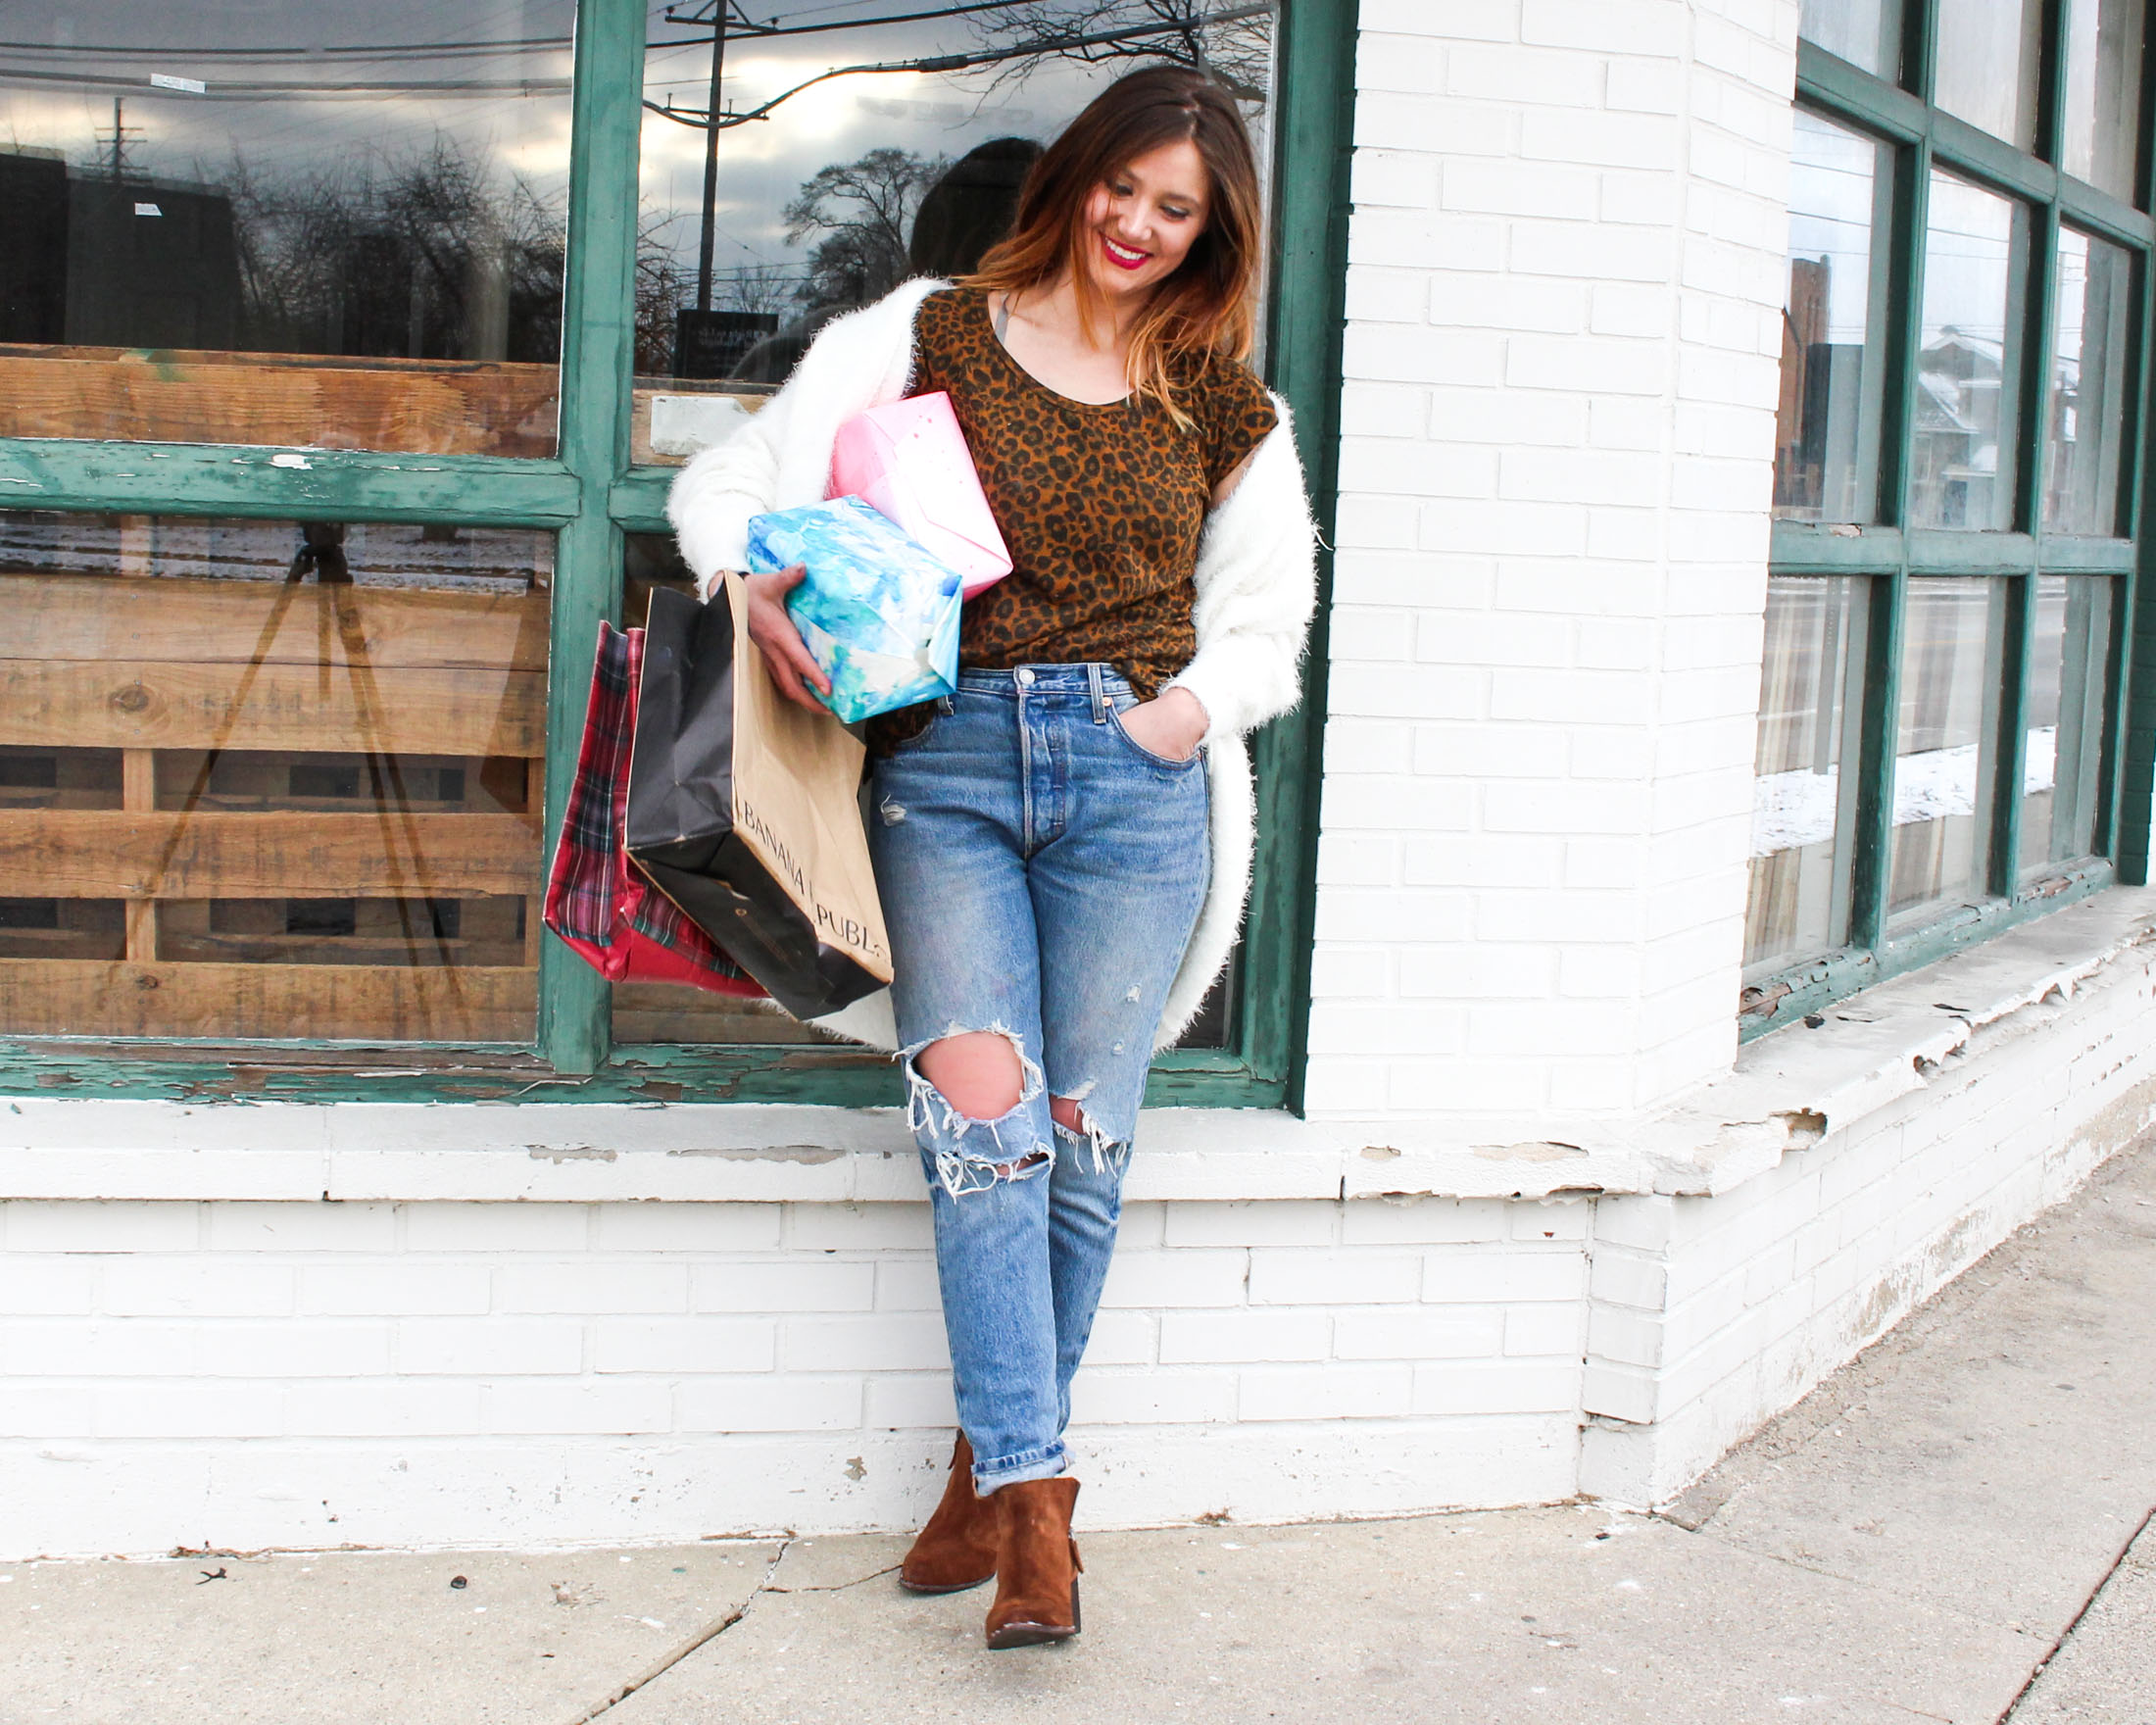 The key to nailing your holiday shopping outfit is COMFORT. Think fav denim, walkable shoes & layers. Here's how we do for gift-hunting garb success.